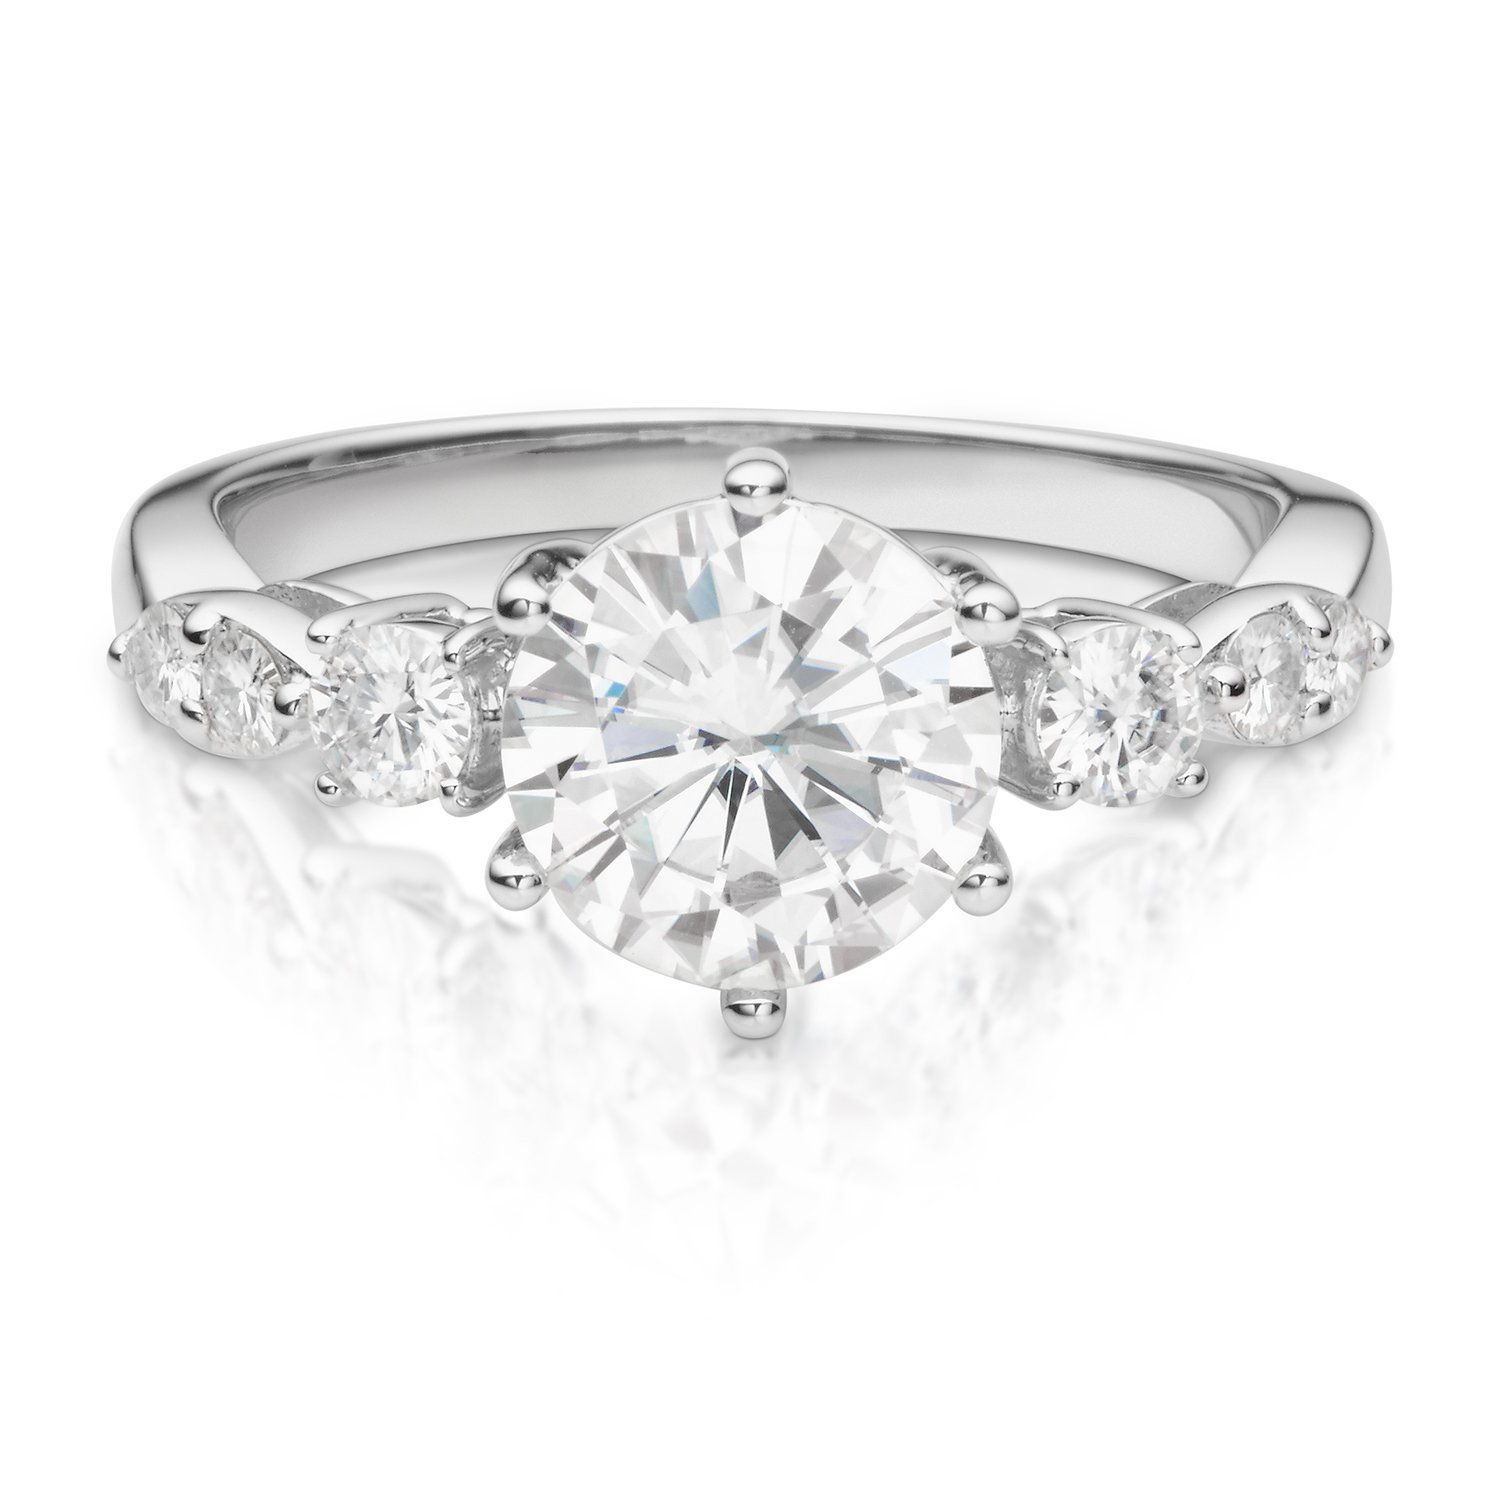 Forever One Round 8.0mm Moissanite Engagement Ring-size 8, 2.22cttw DEW (G-H-I) by Charles & Colvard